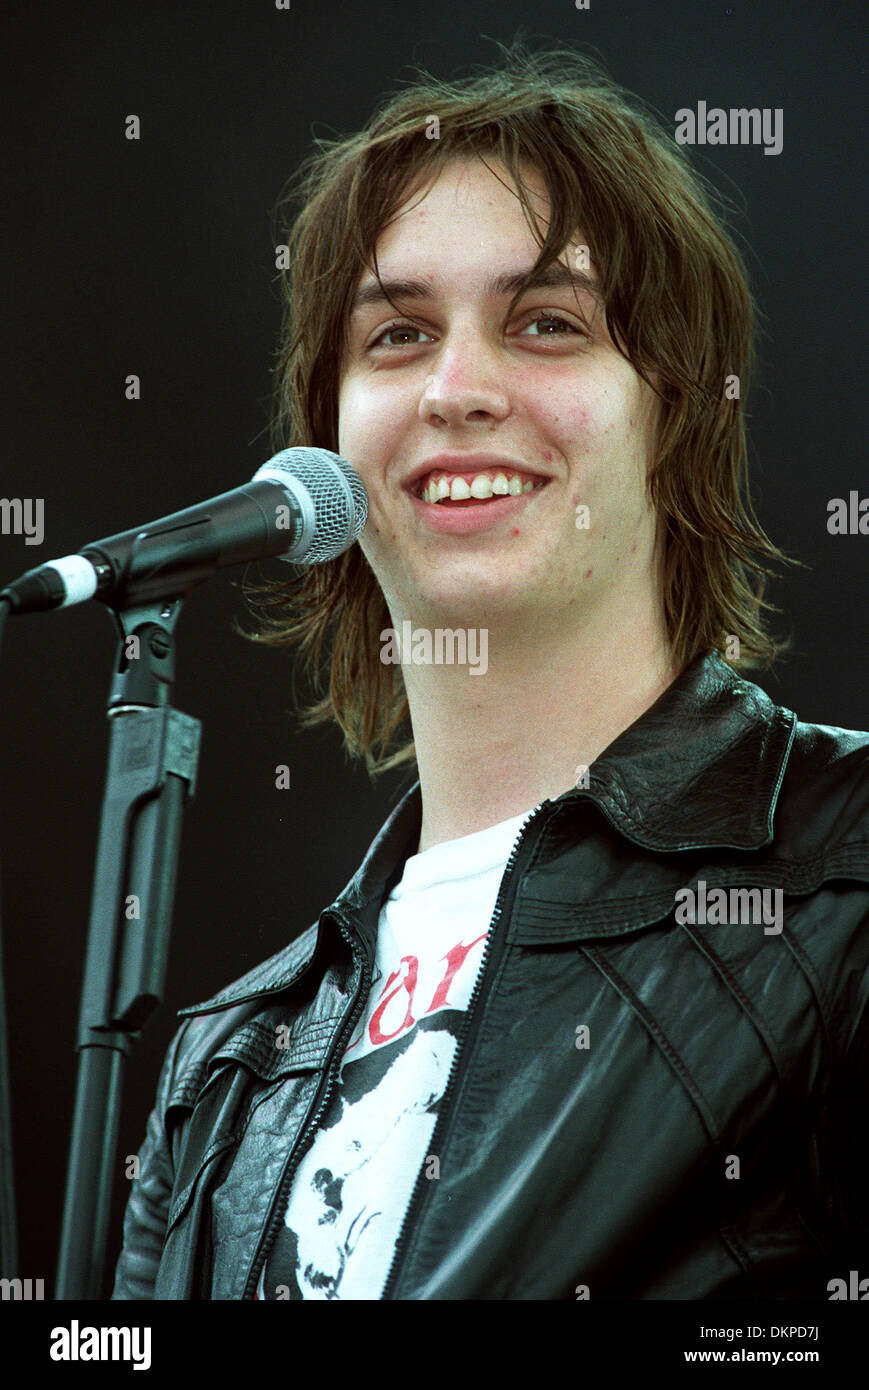 The Strokes Lead Singer